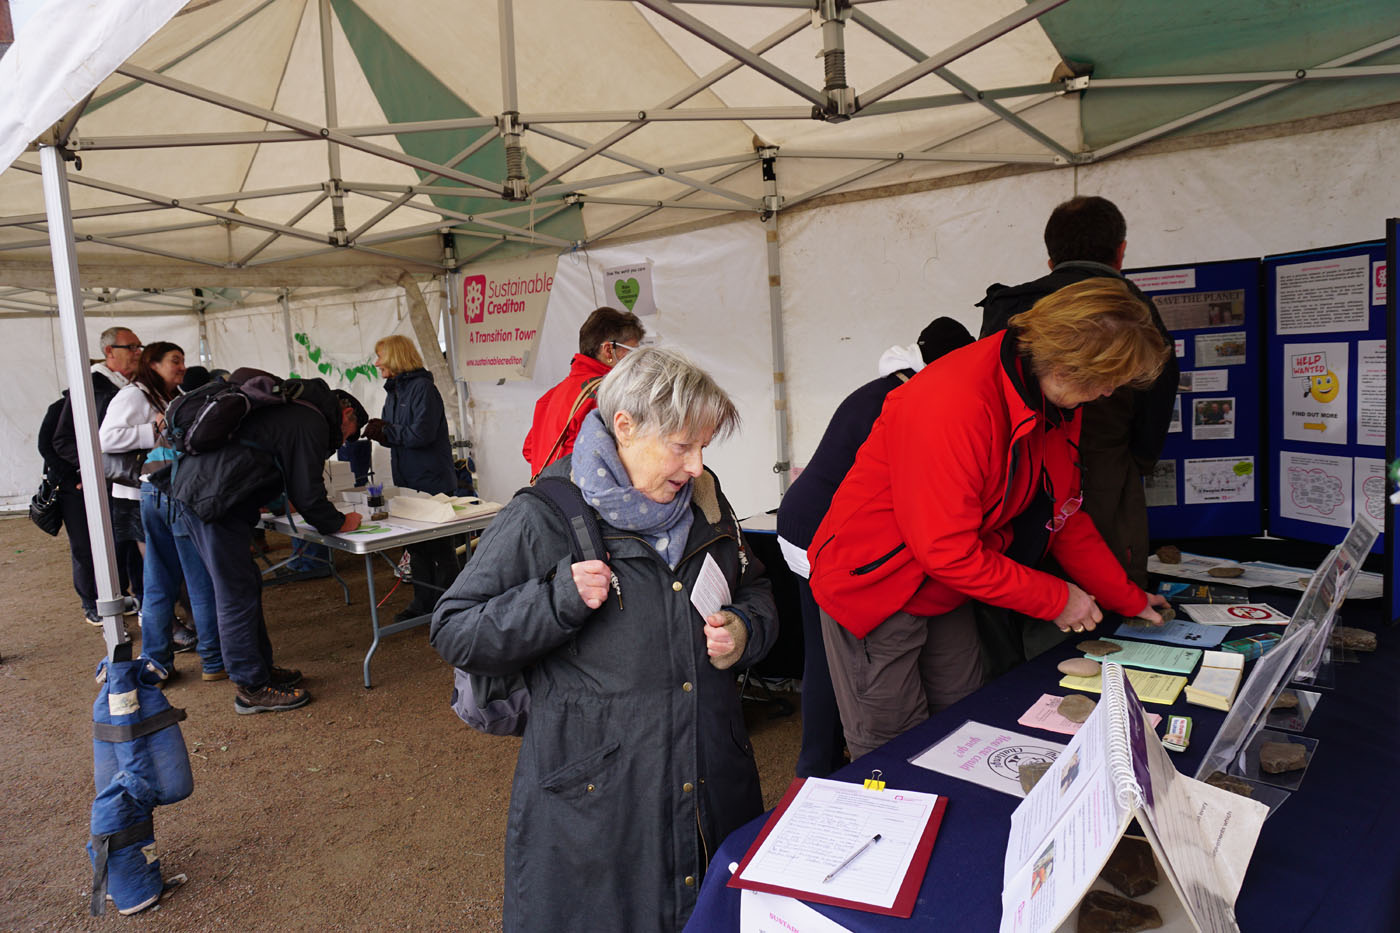 Photograph of people browsing the Sustainable Crediton stall